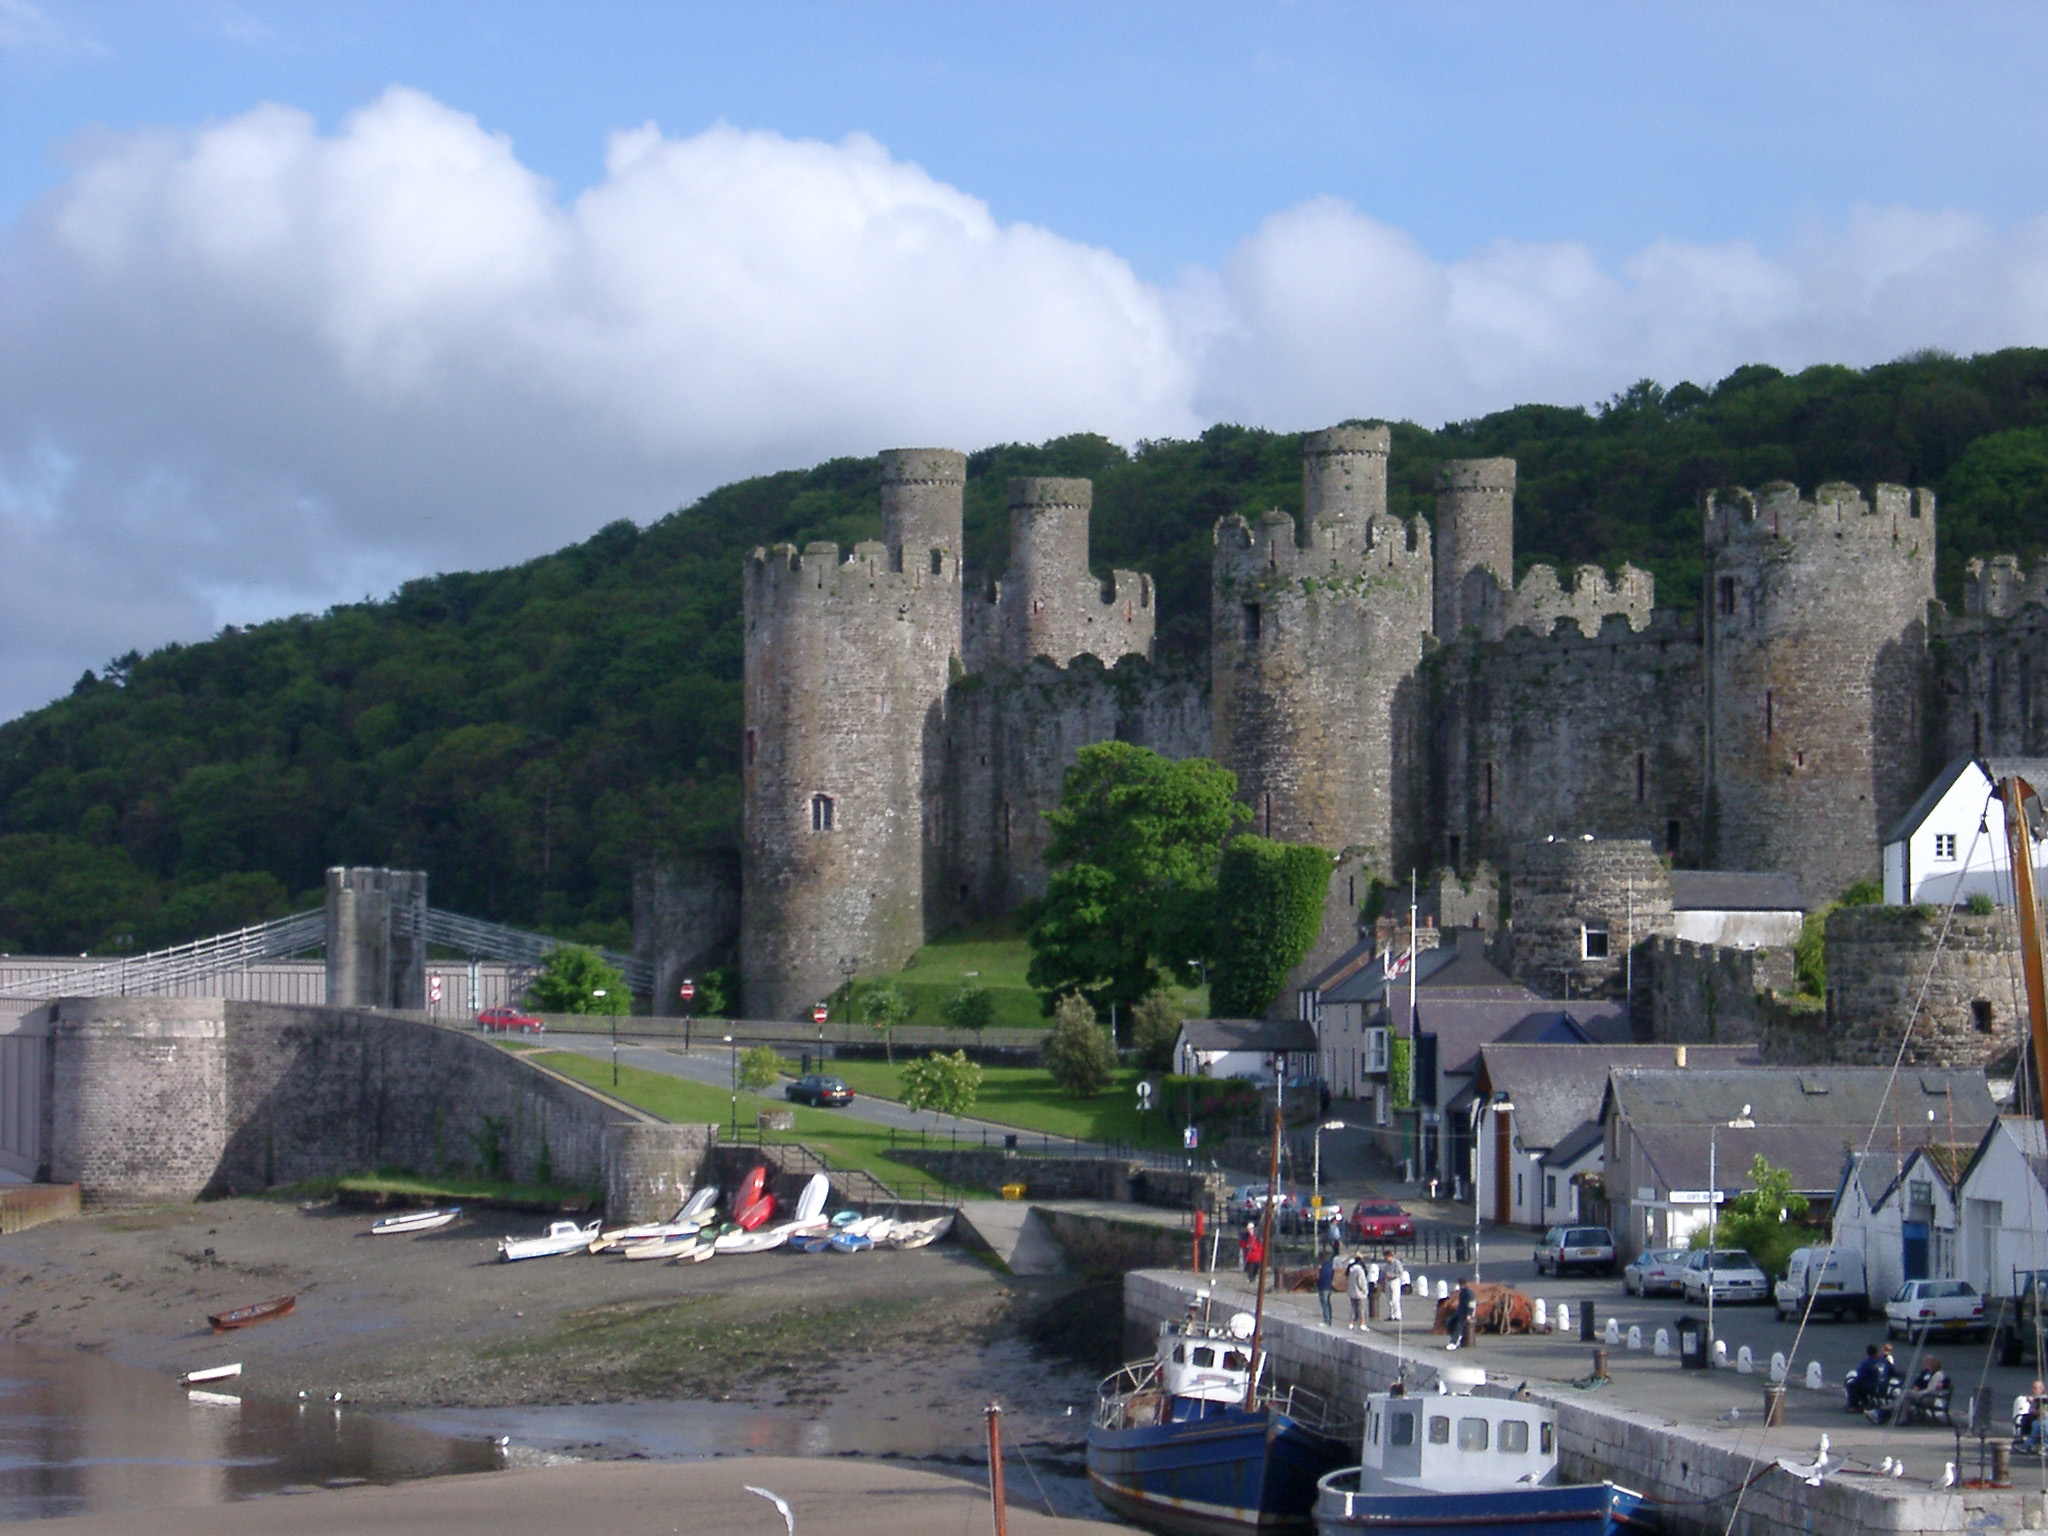 view of historic conwy castle and fishing boats at a jetty on the banks of the conwy river